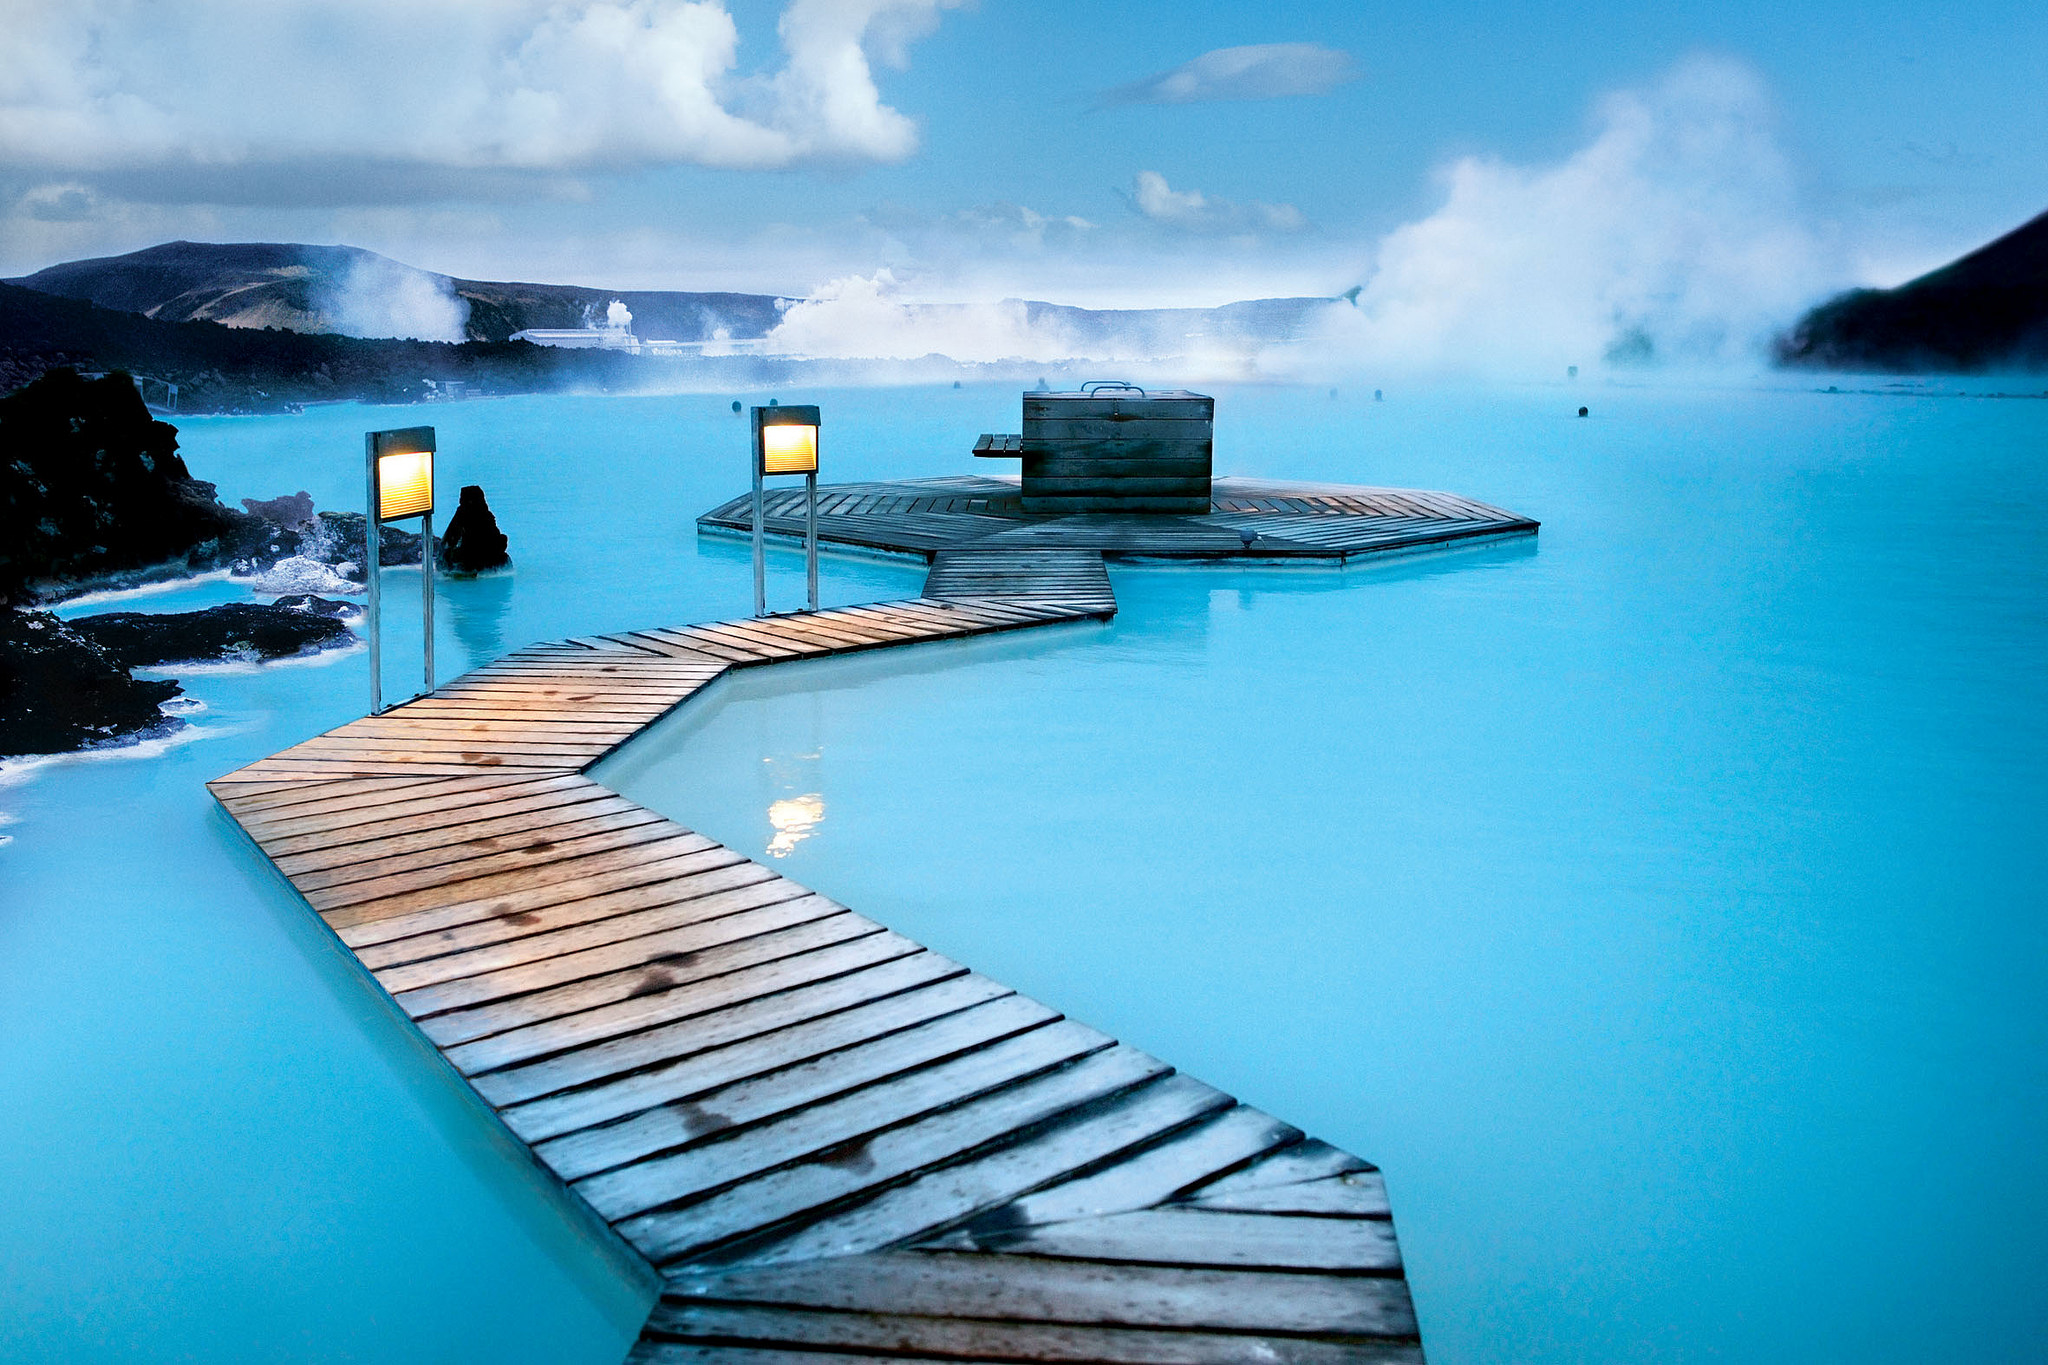 The Blue Lagoon. Photograph by Roderick Elme Cc 2.0.